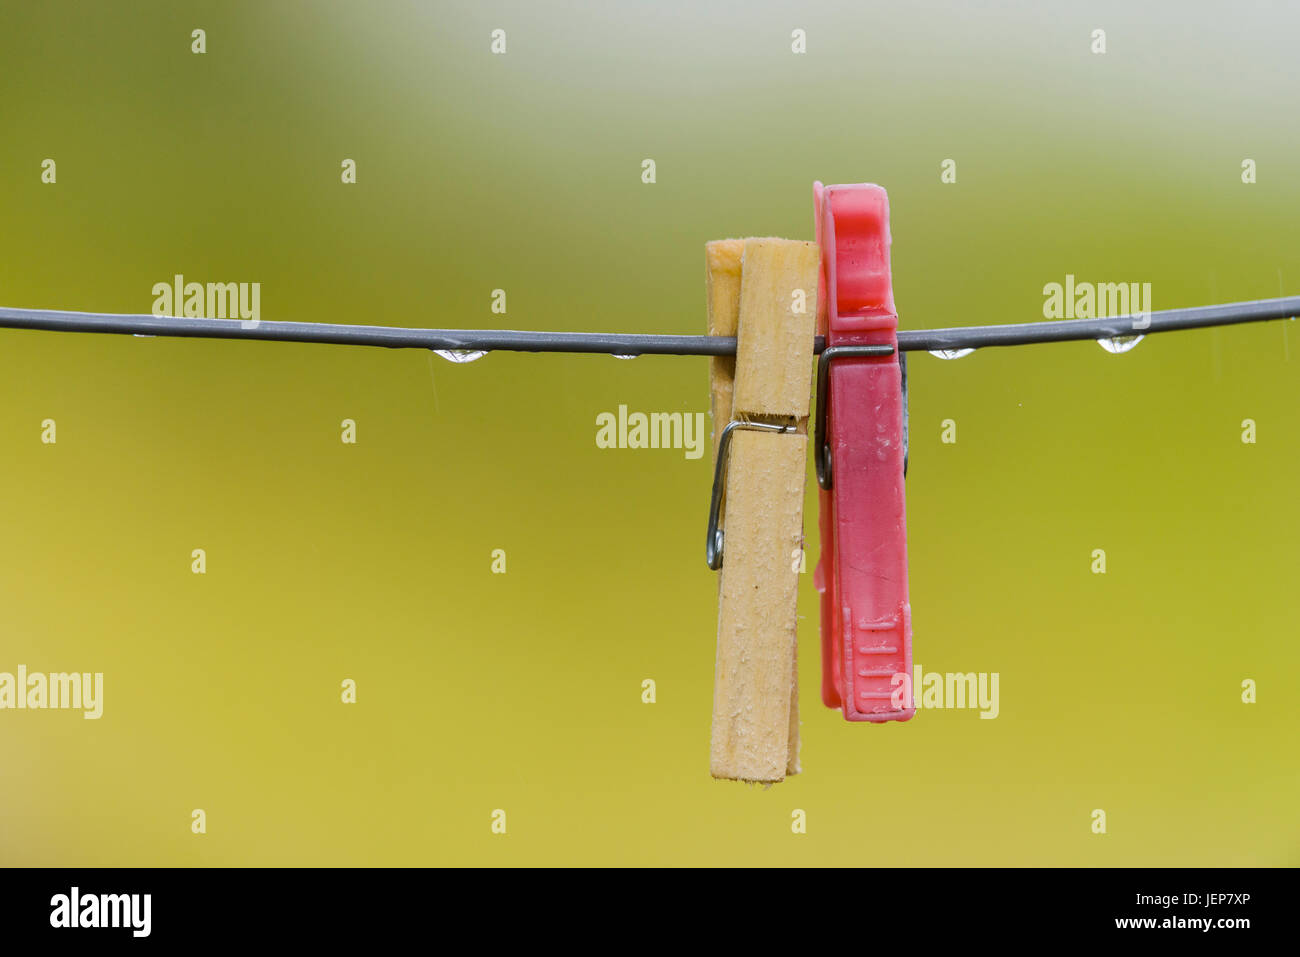 Clothes pegs on line - Stock Image